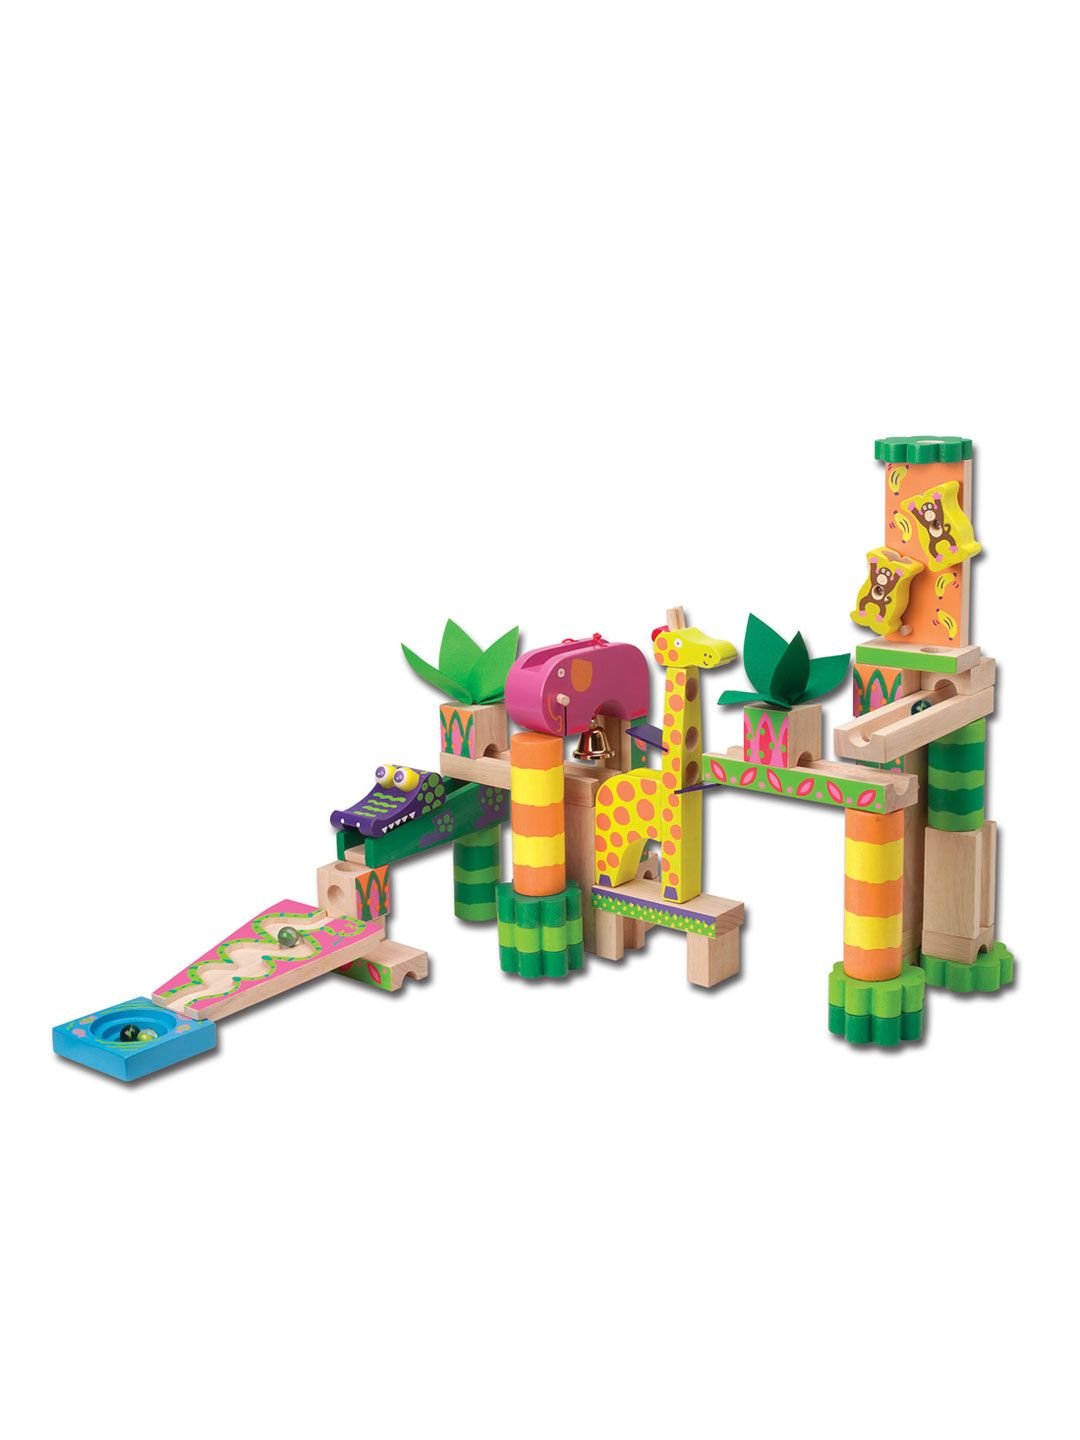 Jungle Marble Maze Build It Marble Maze Alex Toys Wooden Marble Run